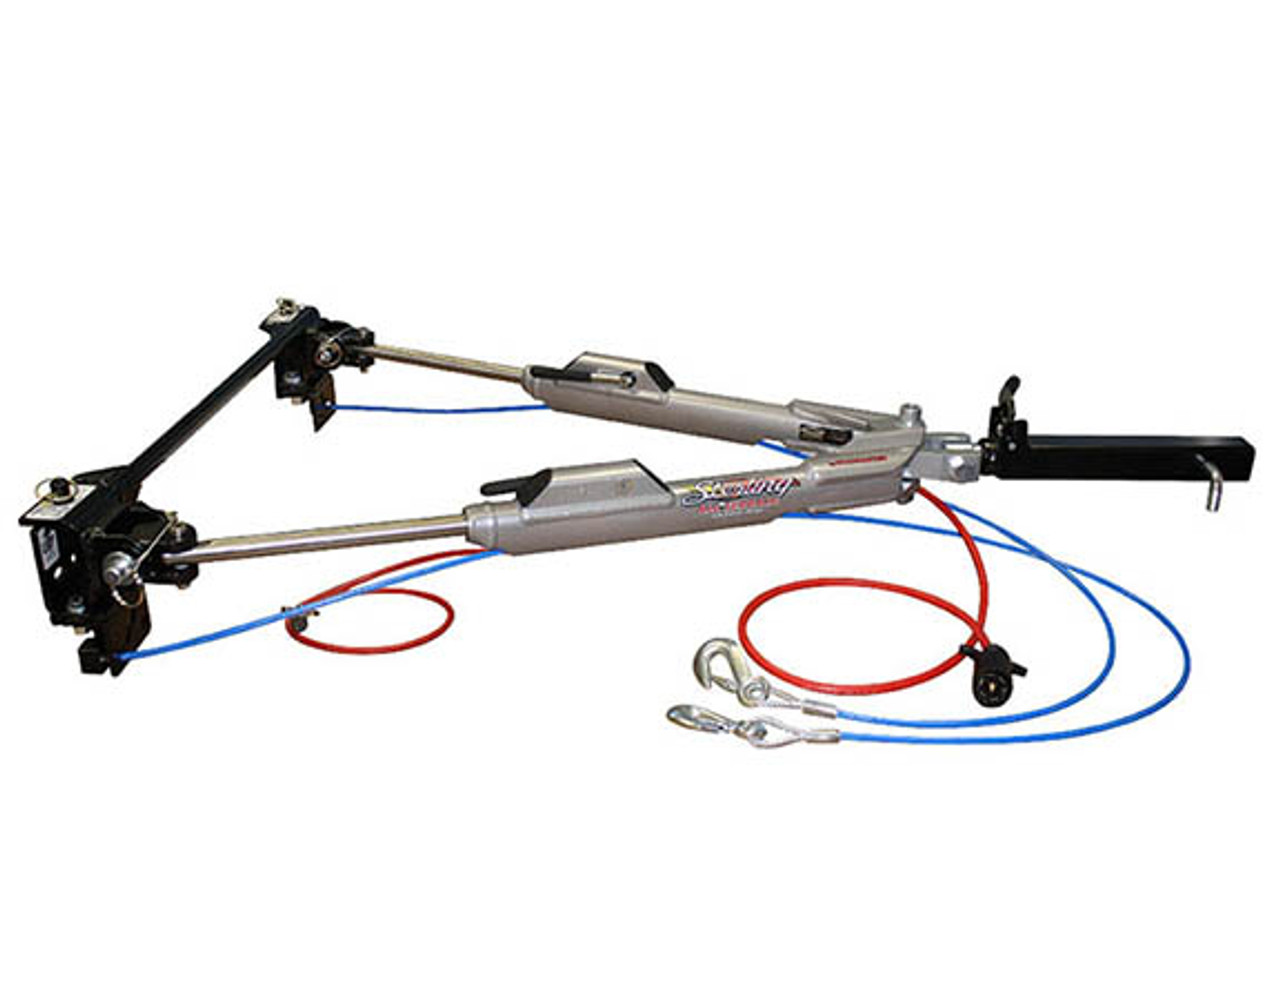 576 --- Roadmaster Sterling All Terrain 8,000 lb Capacity Folding Tow Bar with 6-Wire Electrical Wire and Safety Cables